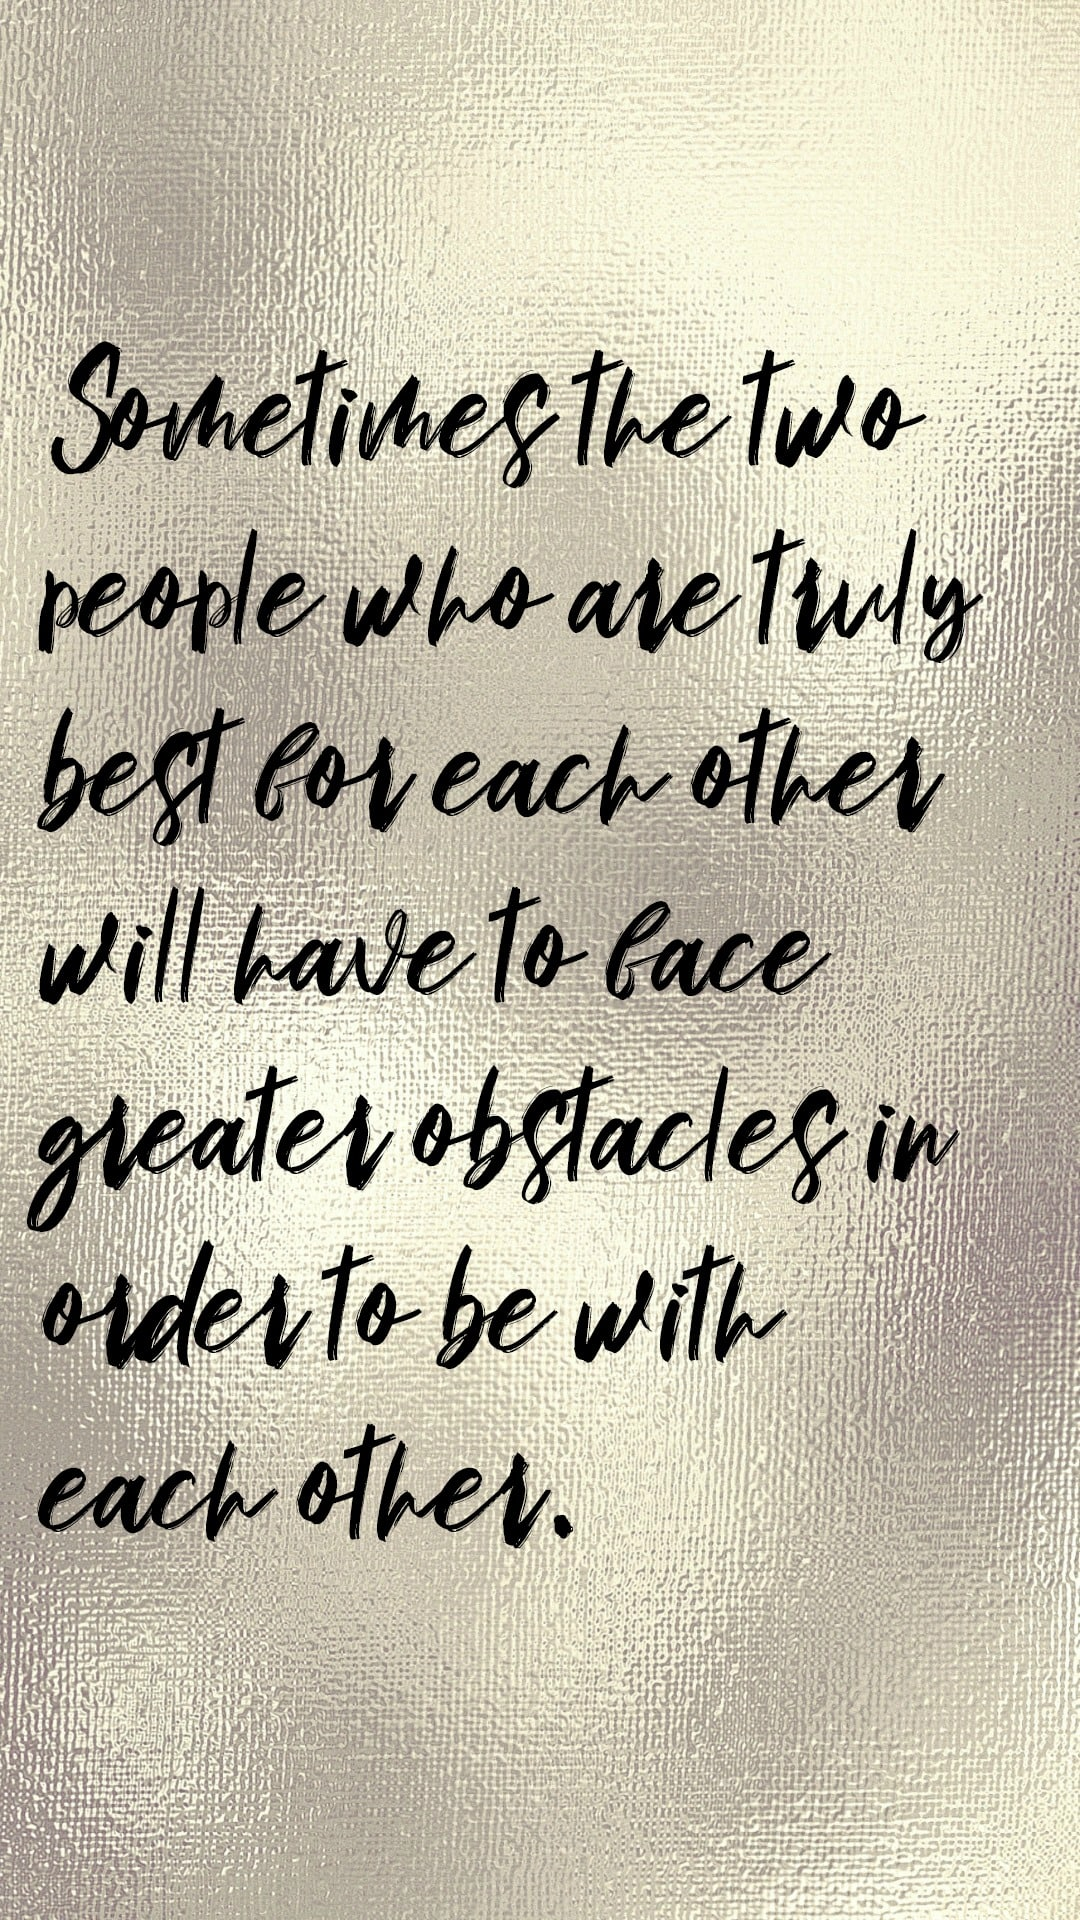 Sometimes the people who are truly best for each other will have to face greater obstacles in order to be with each other